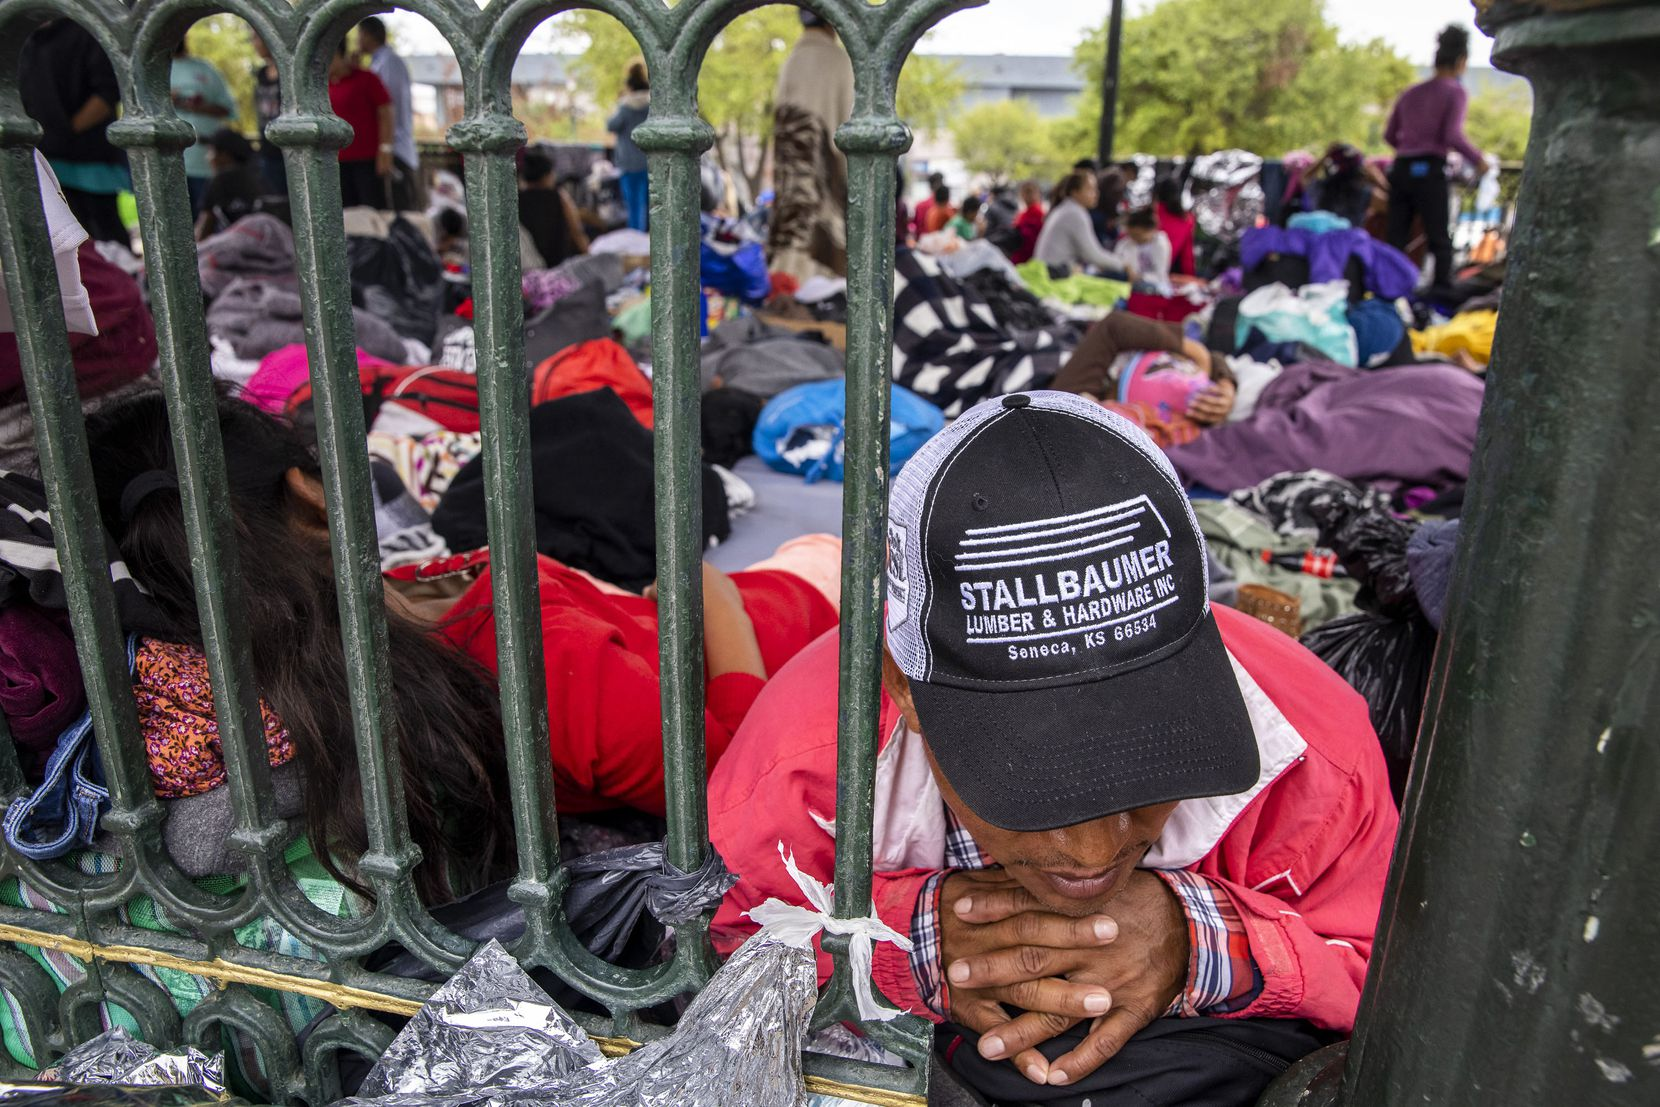 Laureano Sanchez, a migrant from Guatemala, lies among dozens of other expelled migrants sleeping in a gazebo in a public square in the Mexican border city of Reynosa.